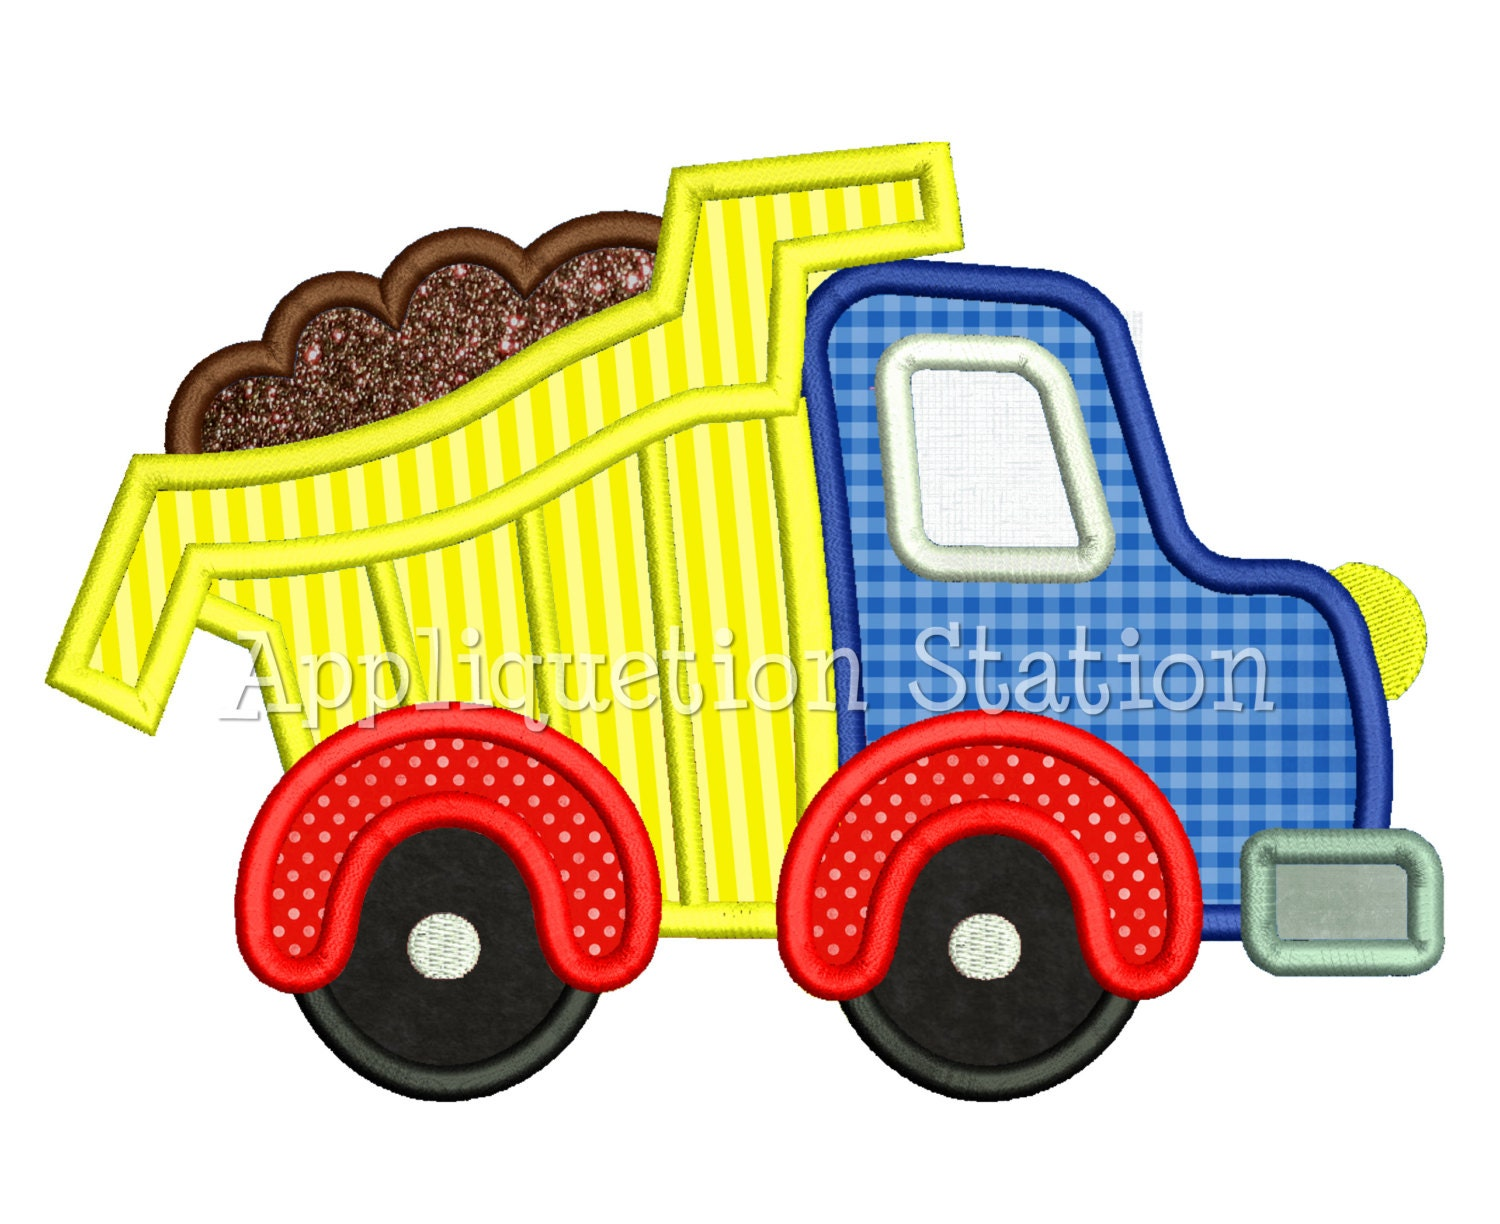 Free Dump Truck Embroidery Design